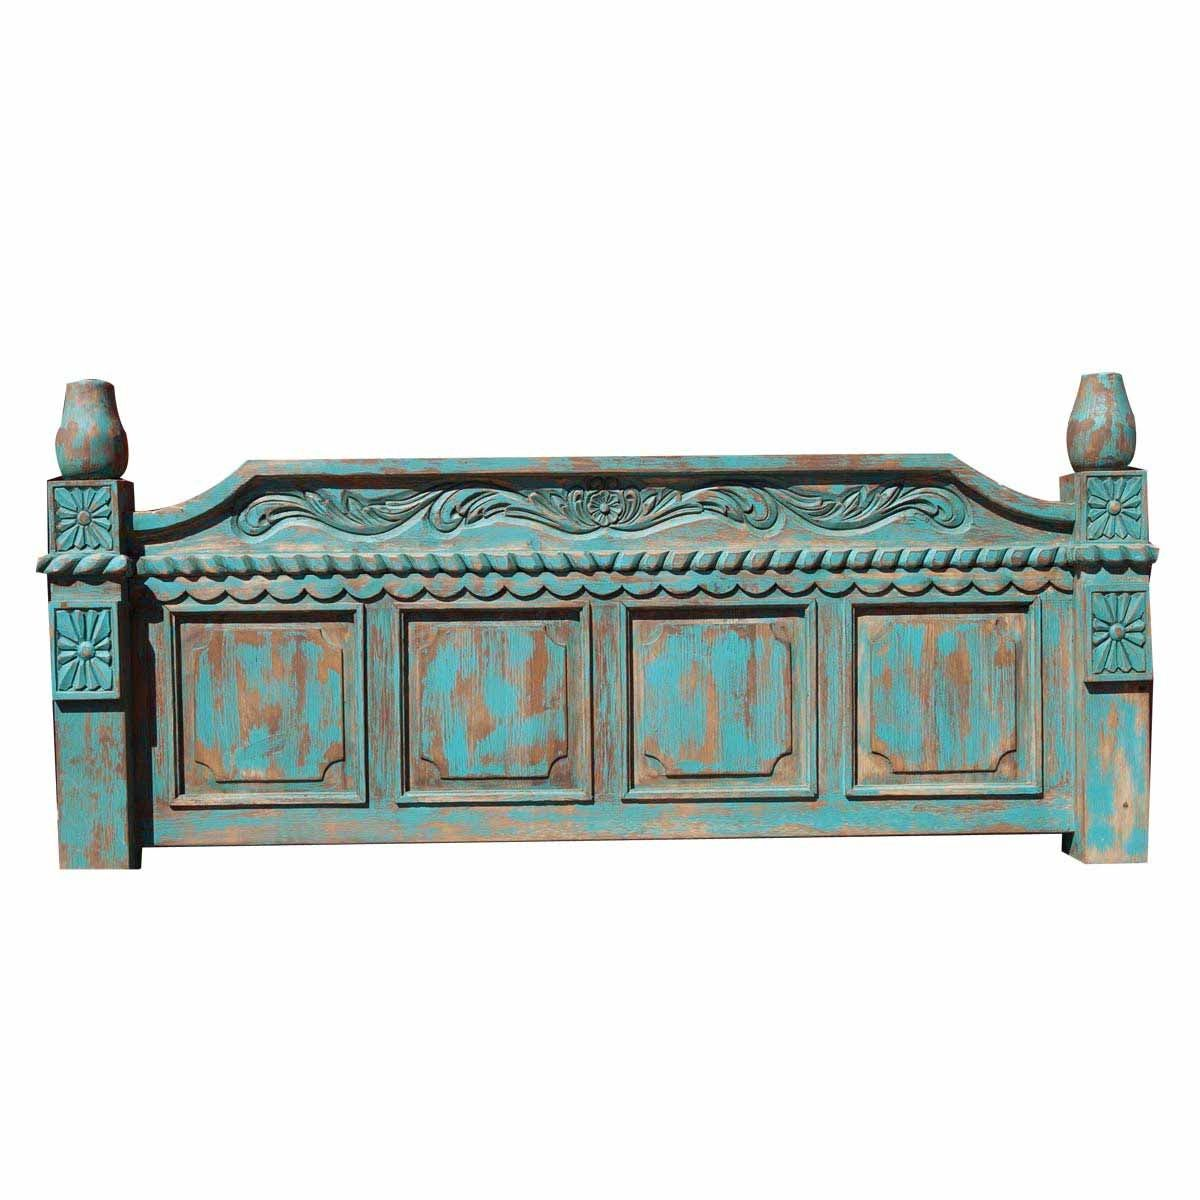 Hand Made Turquoise Rustic Bed With Hand Carved Detail By Foxden Decor